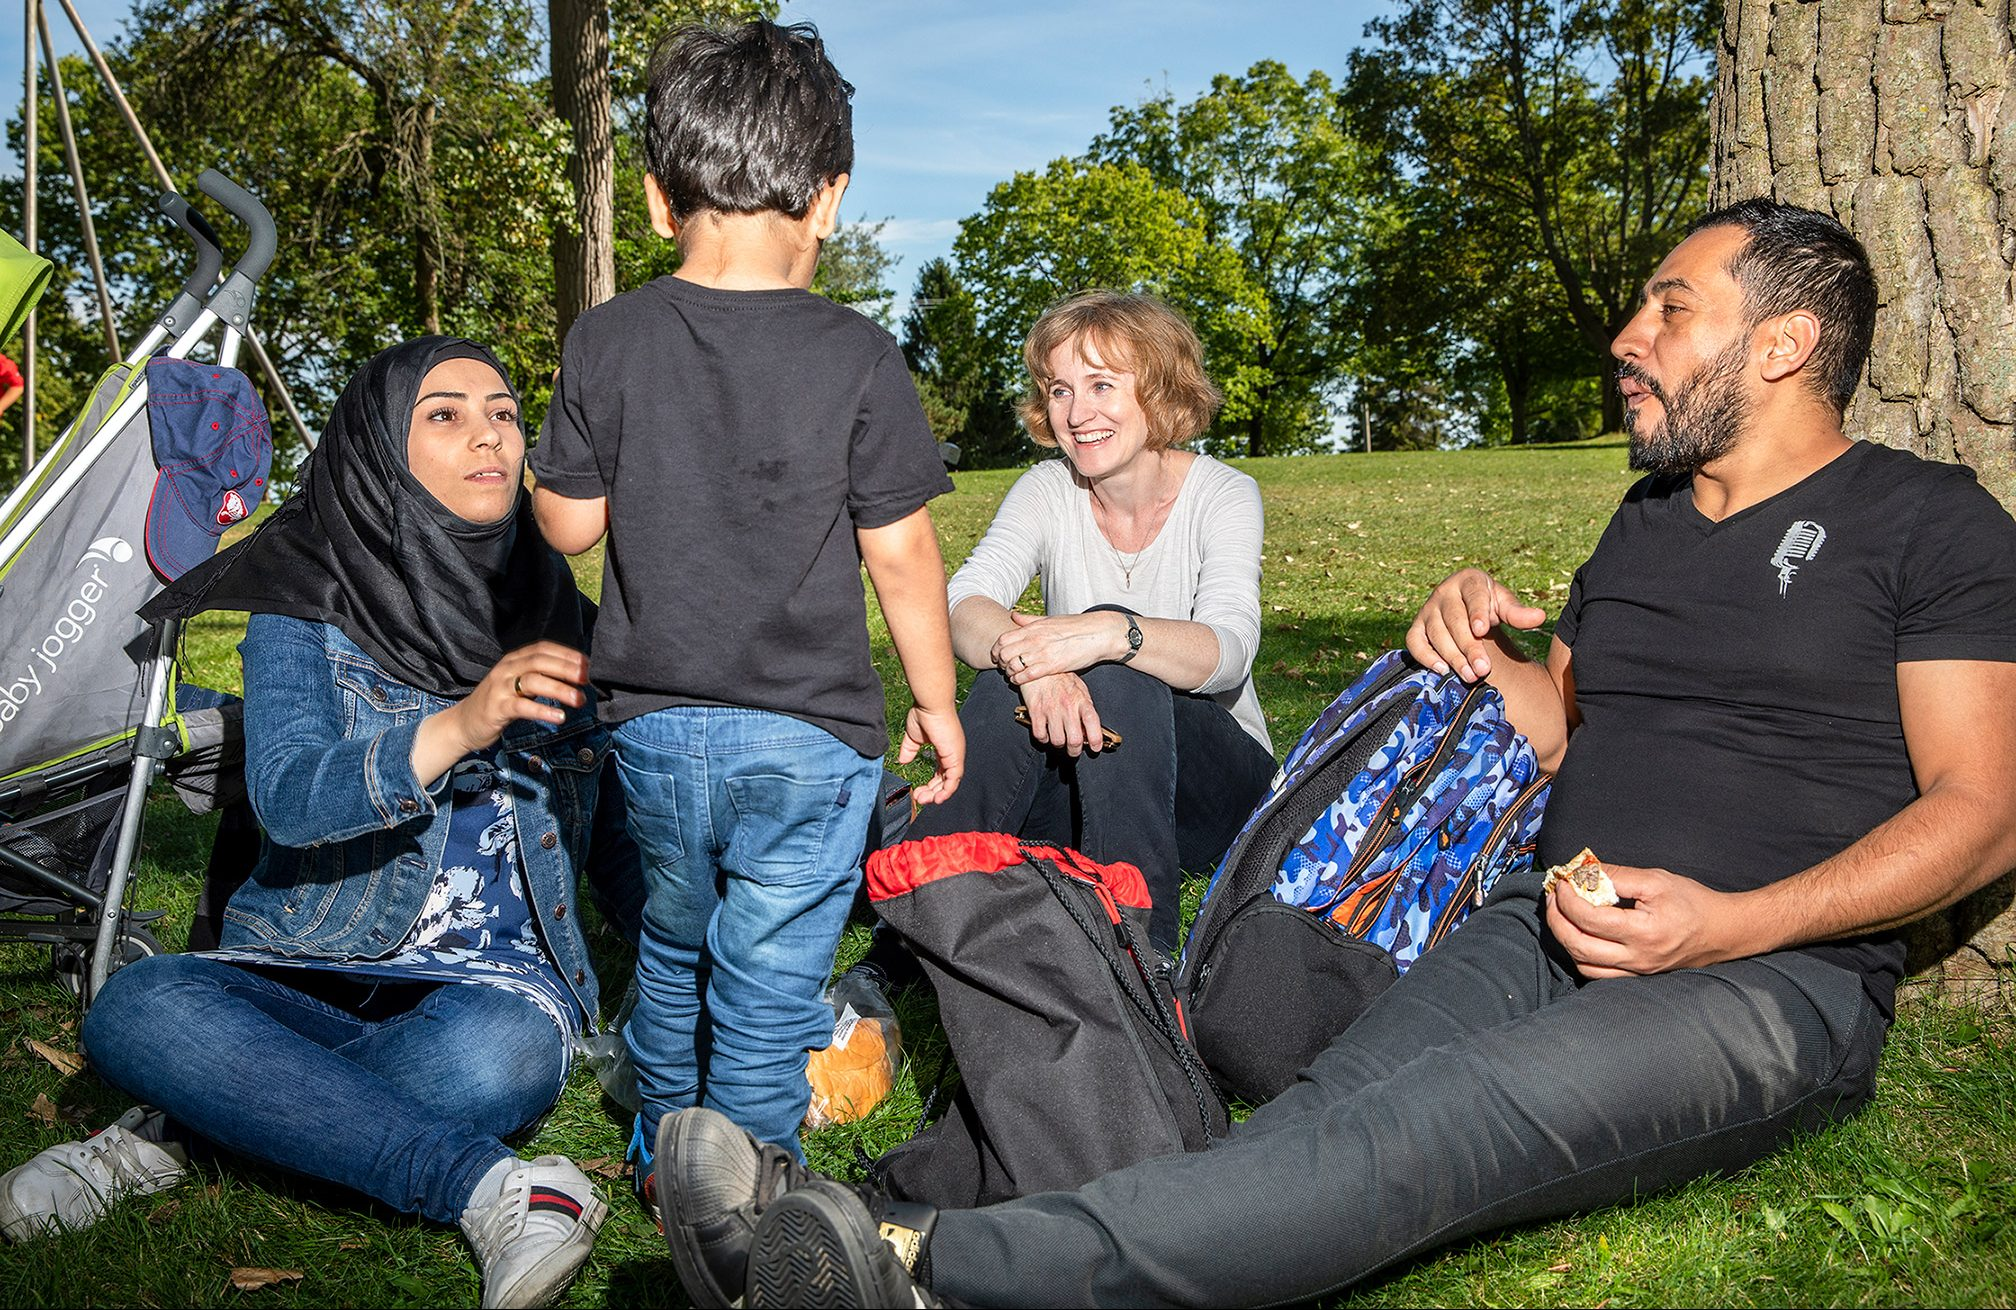 Hanaa Al Bitar, Jennifer Nagel and Alaa Al Saleh are sitting in a grassy field on Centre Island, looking at Mohamad Al Saleh, who is standing. Nagel is smiling and Saleh is leaning against a tree.